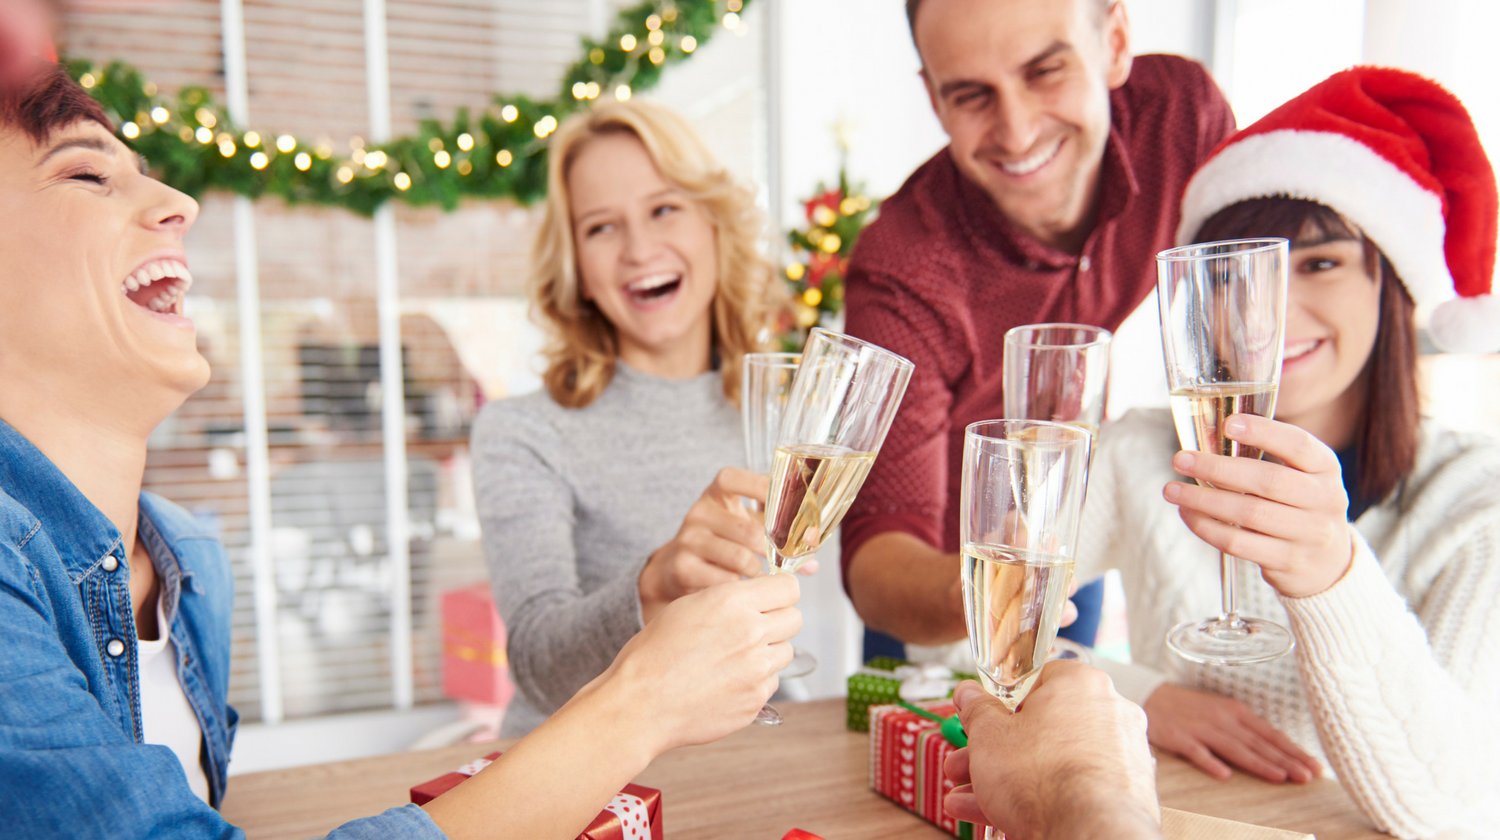 7 Ways To Avoid Holiday Weight Gain